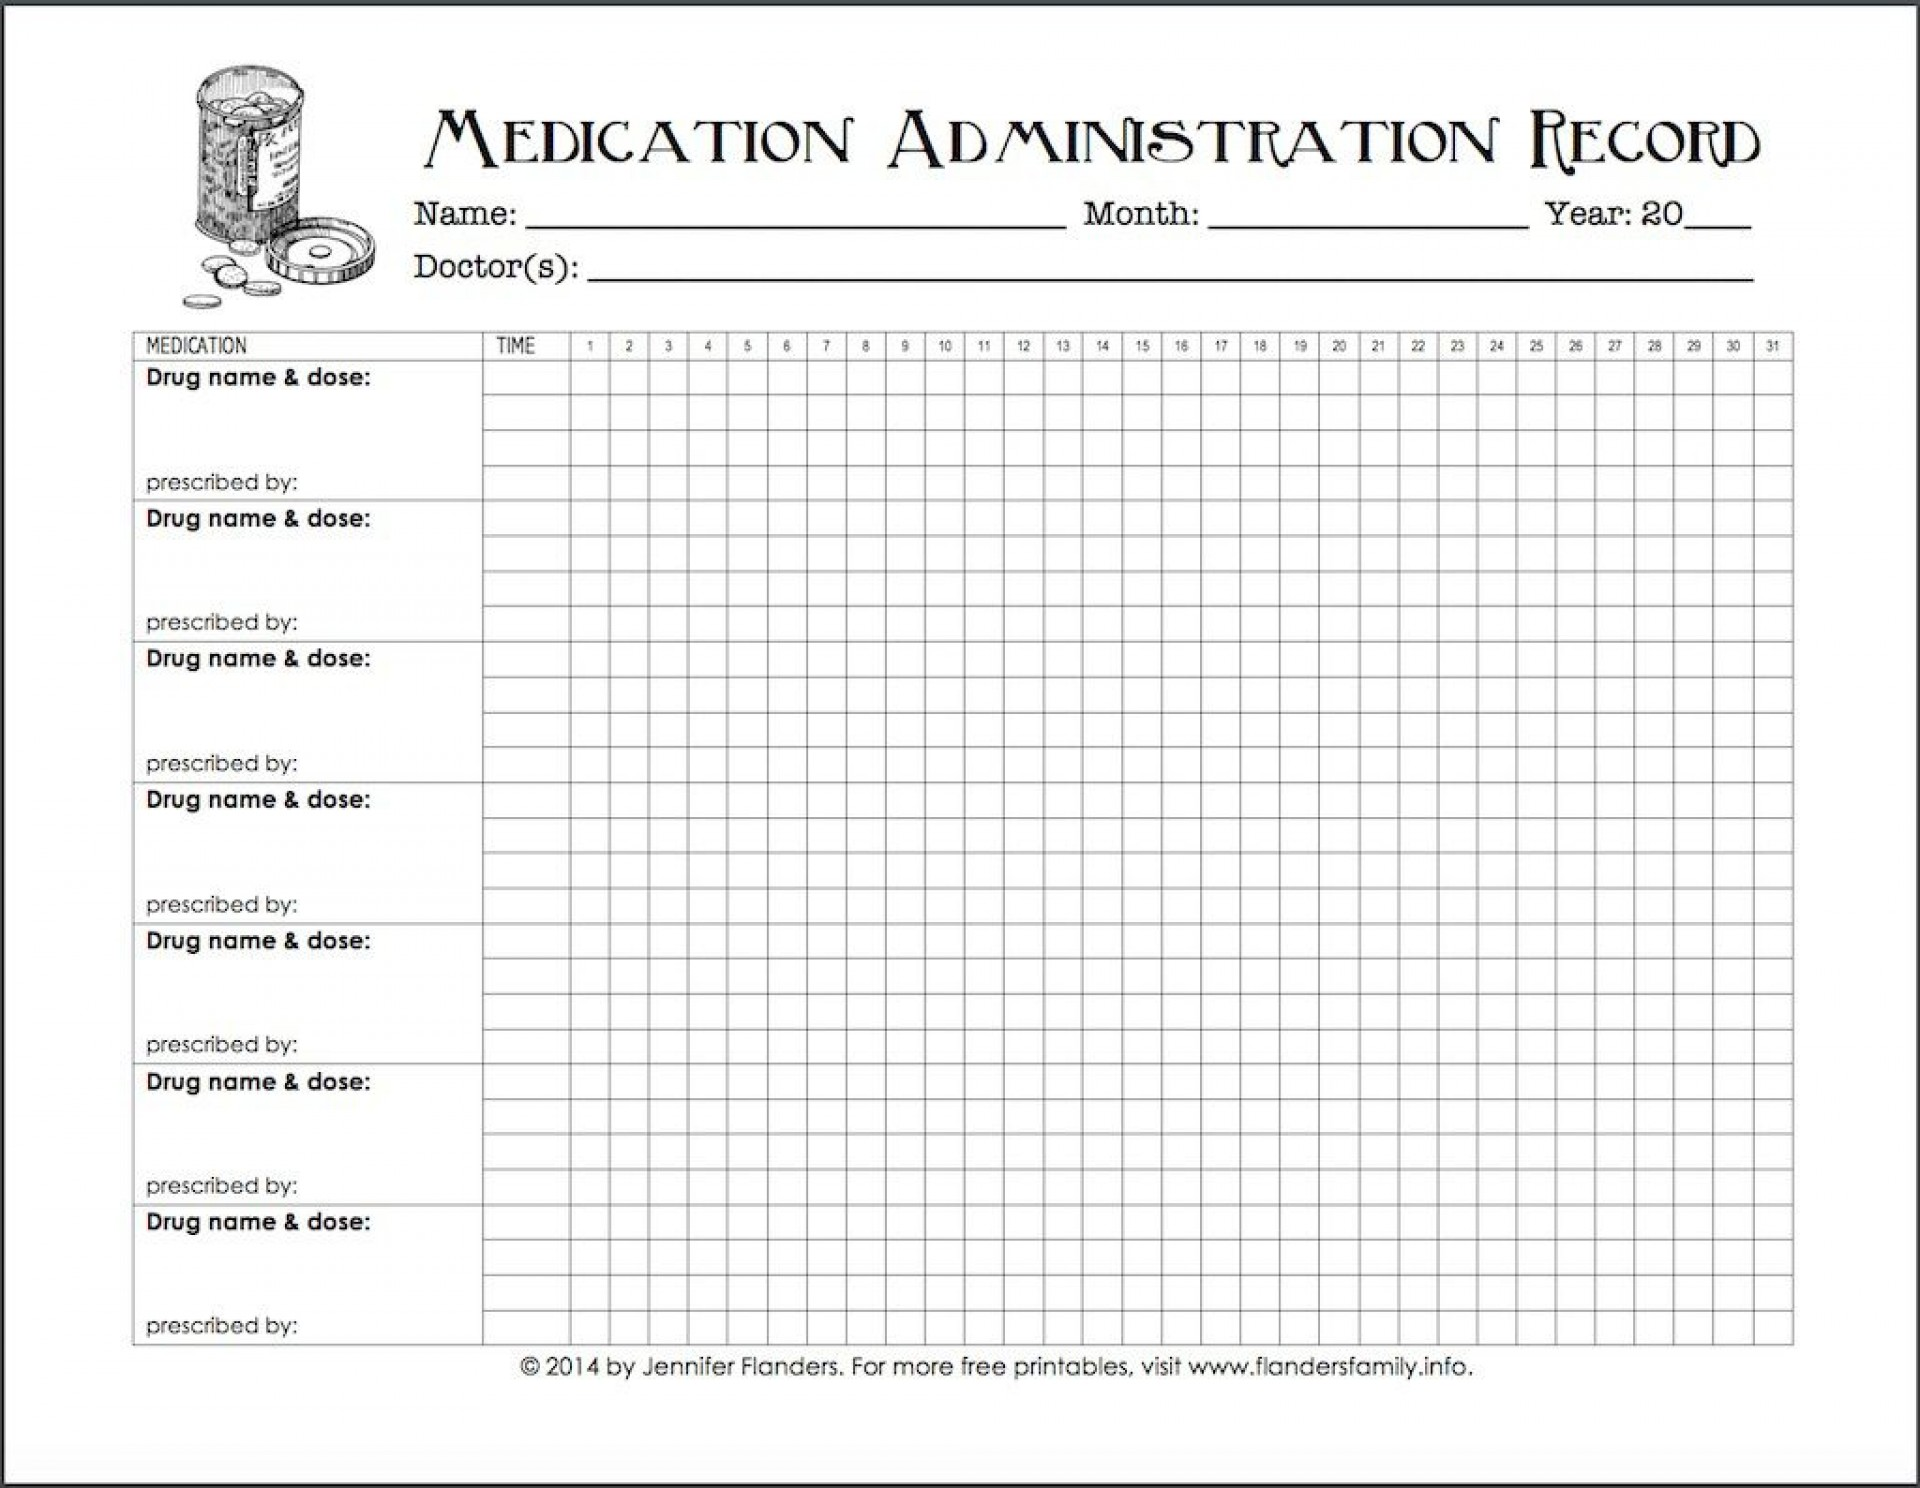 Blank Medication Administration Record Template ~ Addictionary